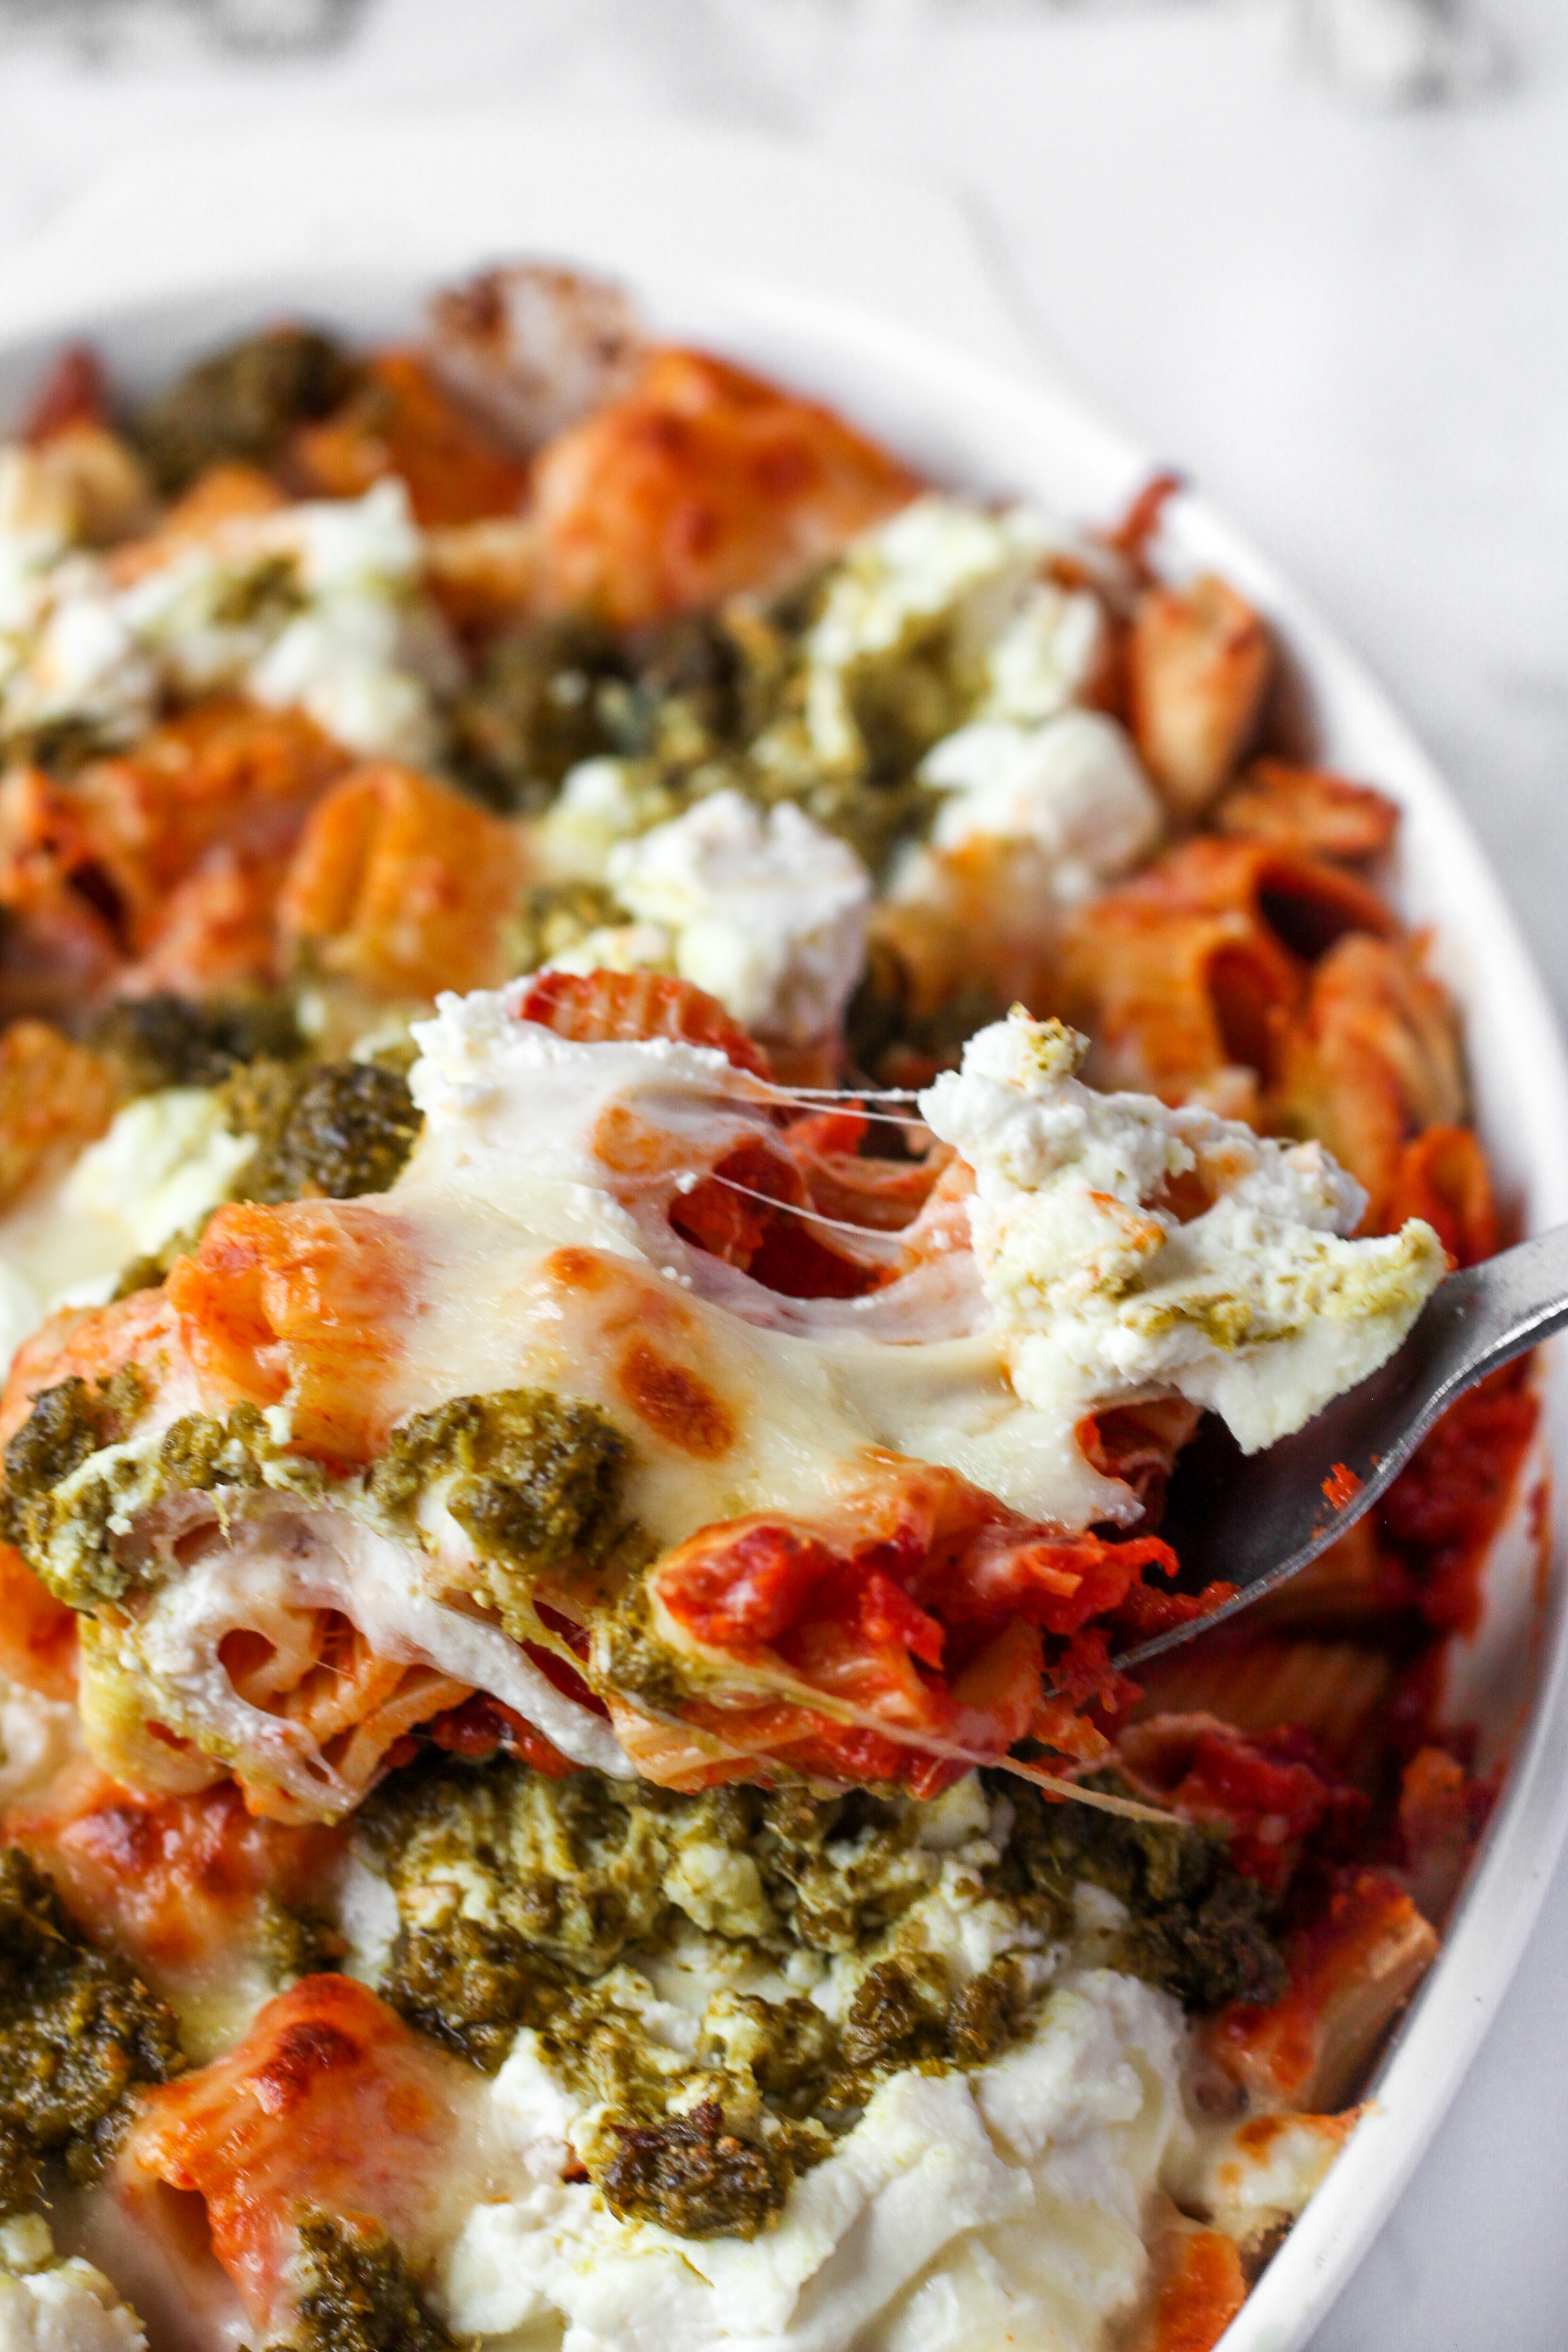 spooning the chicken pesto pasta bake from the casserole dish